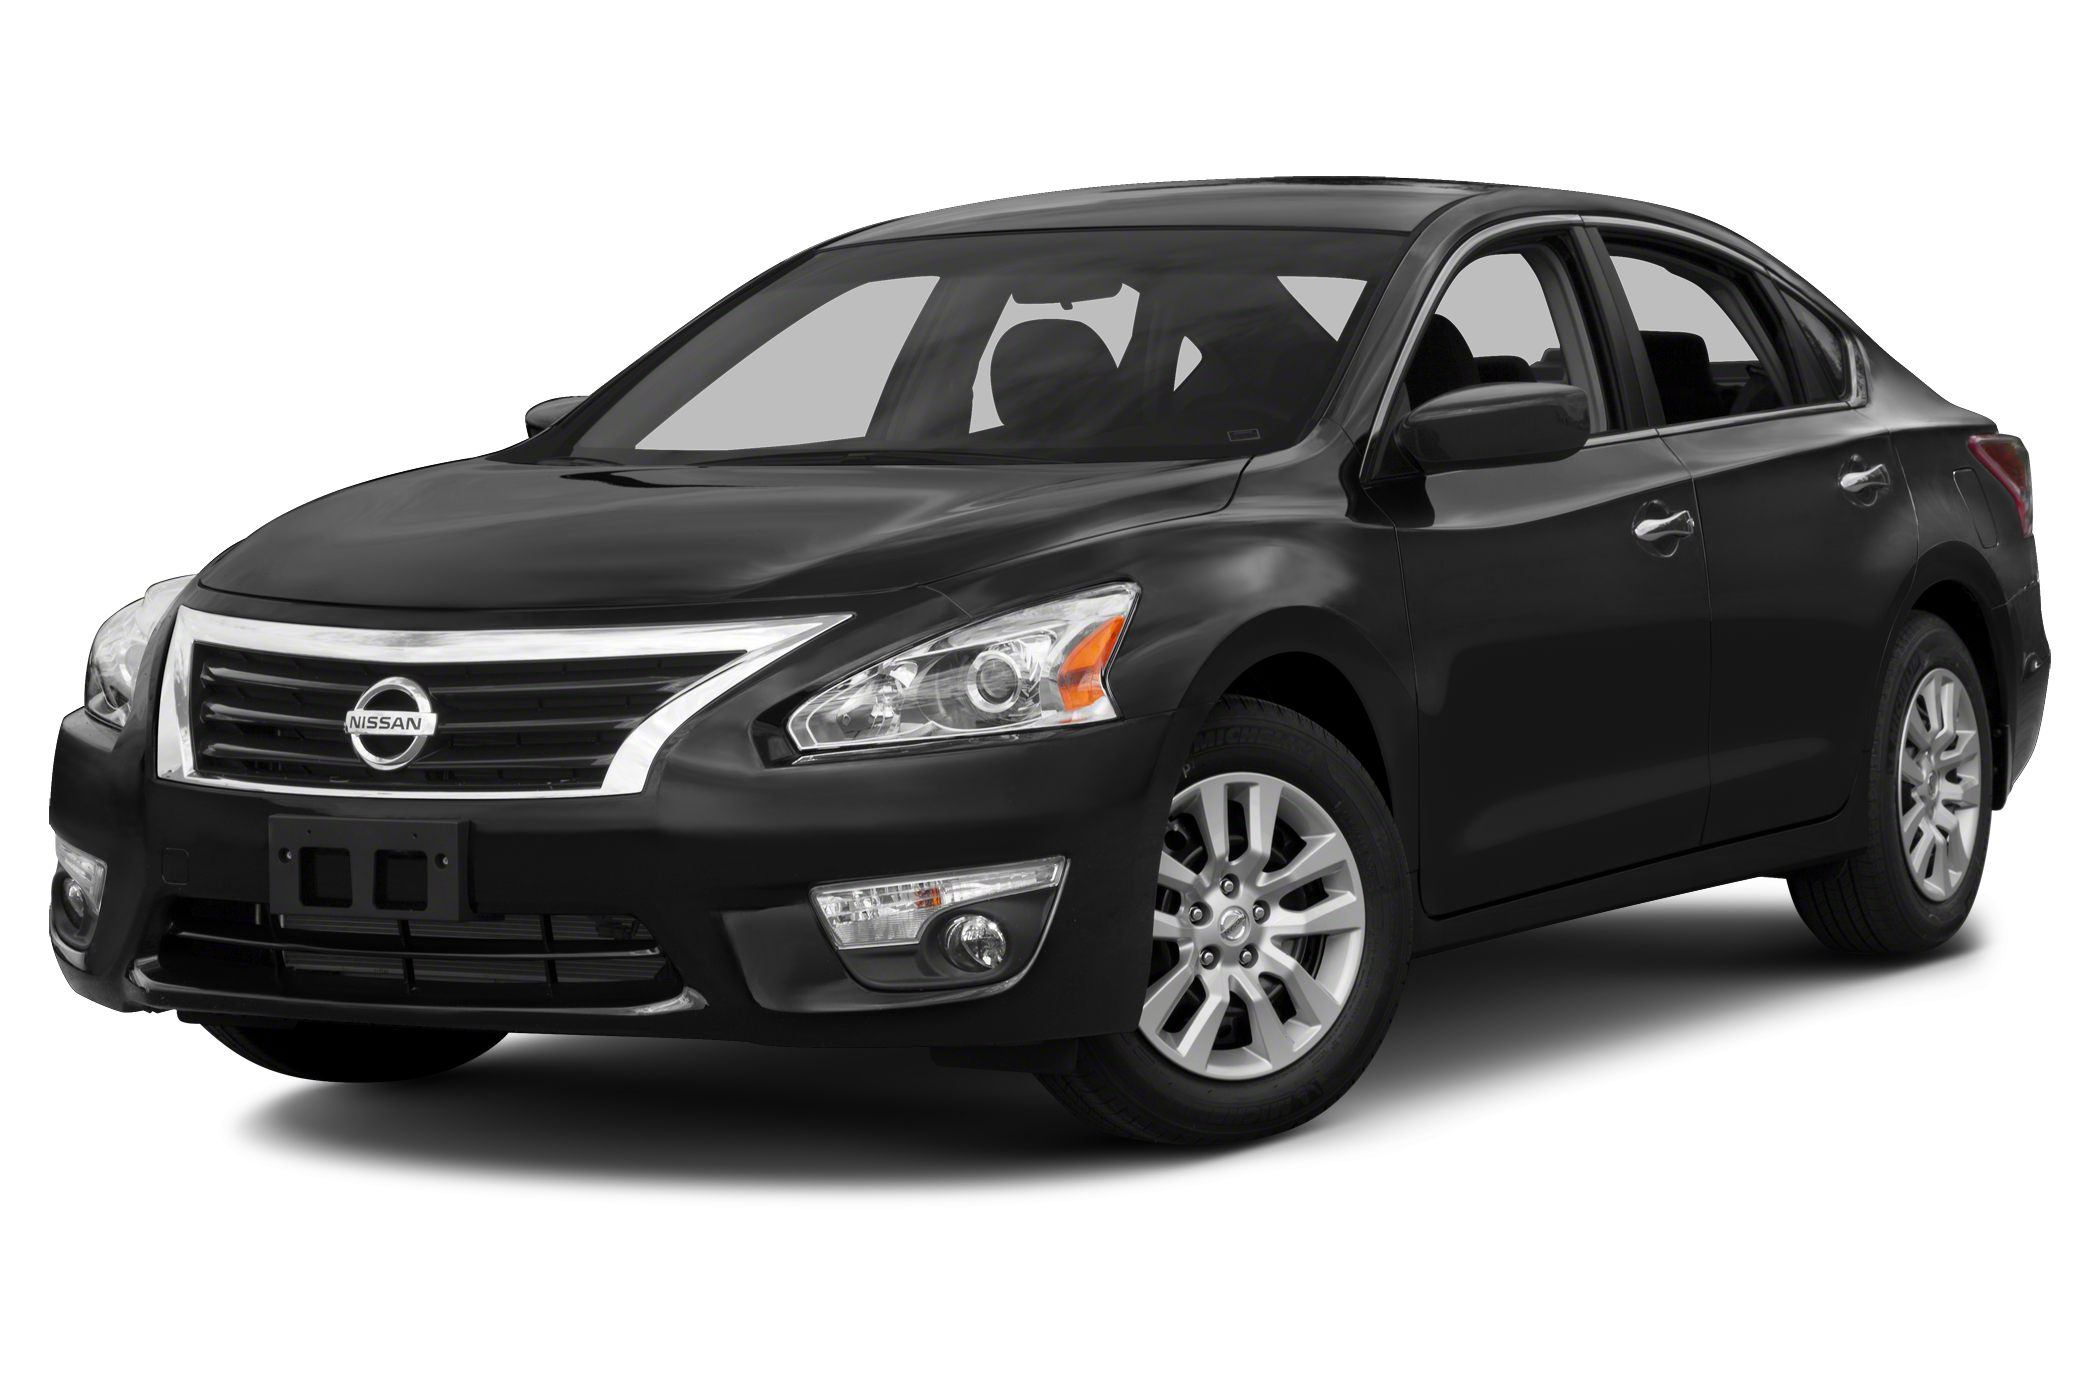 2013 Nissan Altima 2.5 Sedan for sale in Flowood for $18,995 with 31,700 miles